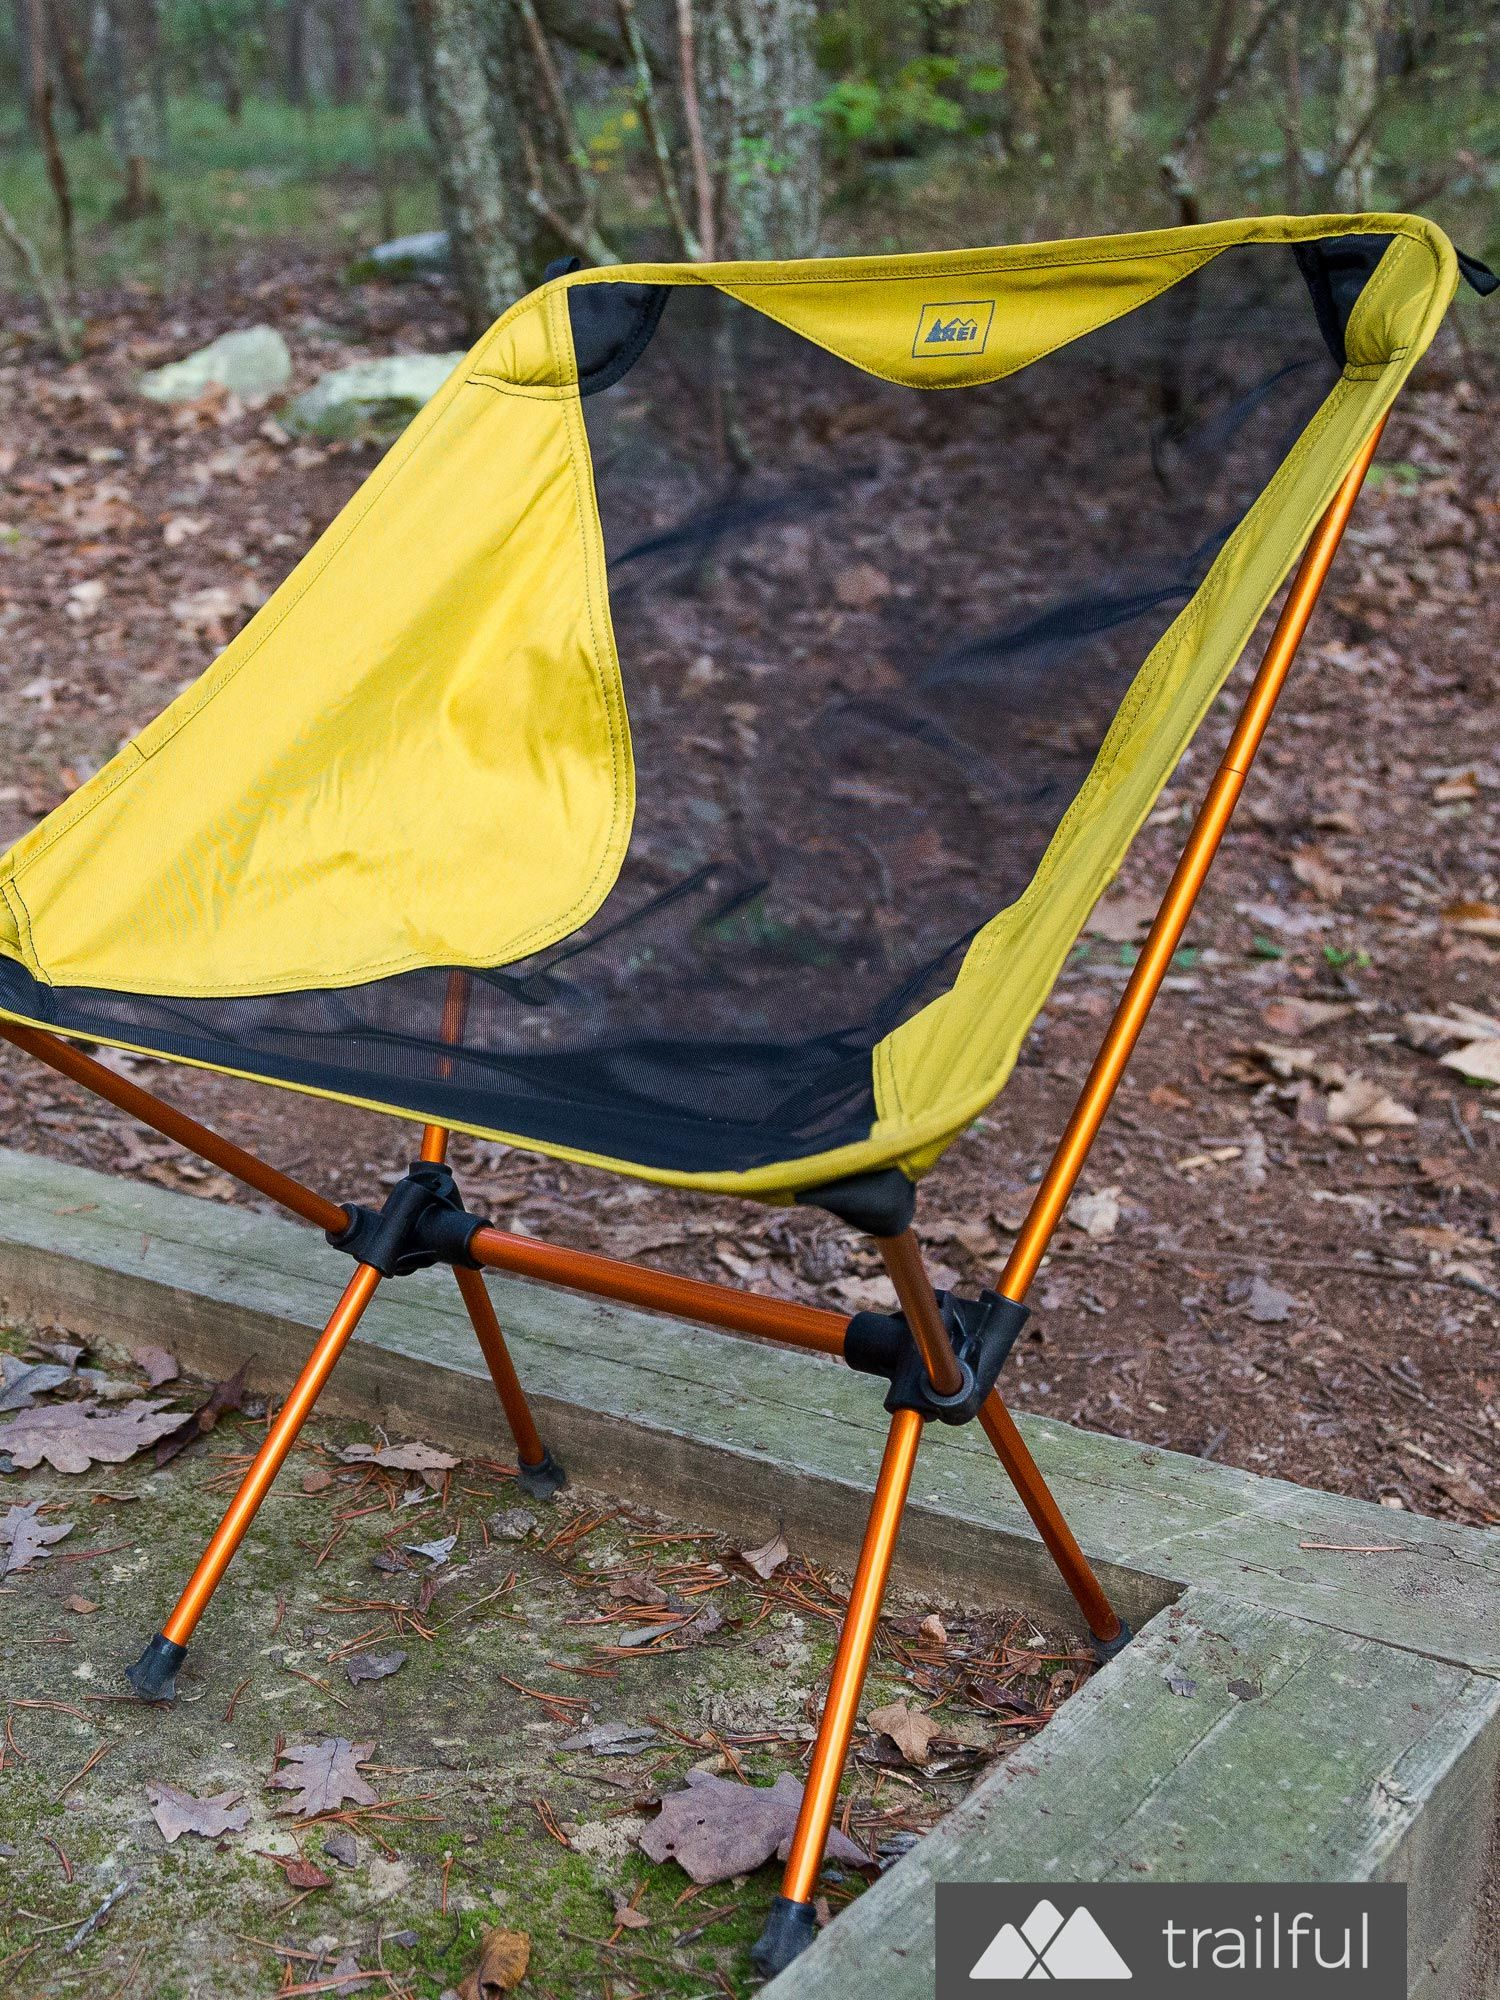 Our Favorite Lightweight Backpacking Chairs And Camp Furniture: The REI  Flexlite Chair Is Ultralight And